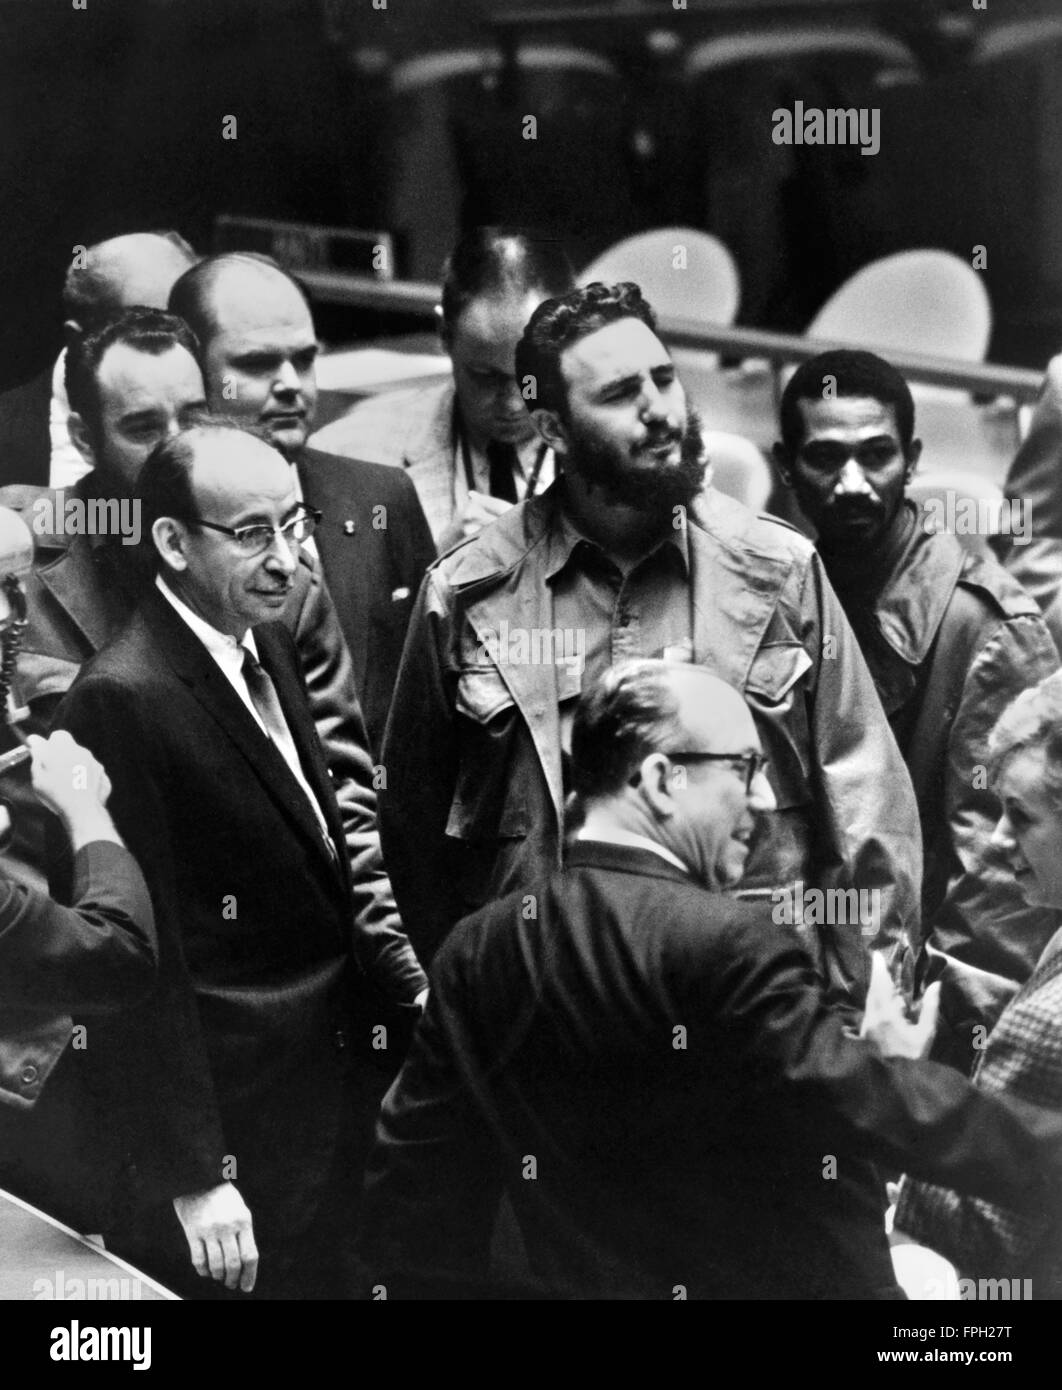 Fidel Castro at the United Nations General Assembly in September 1960. - Stock Image